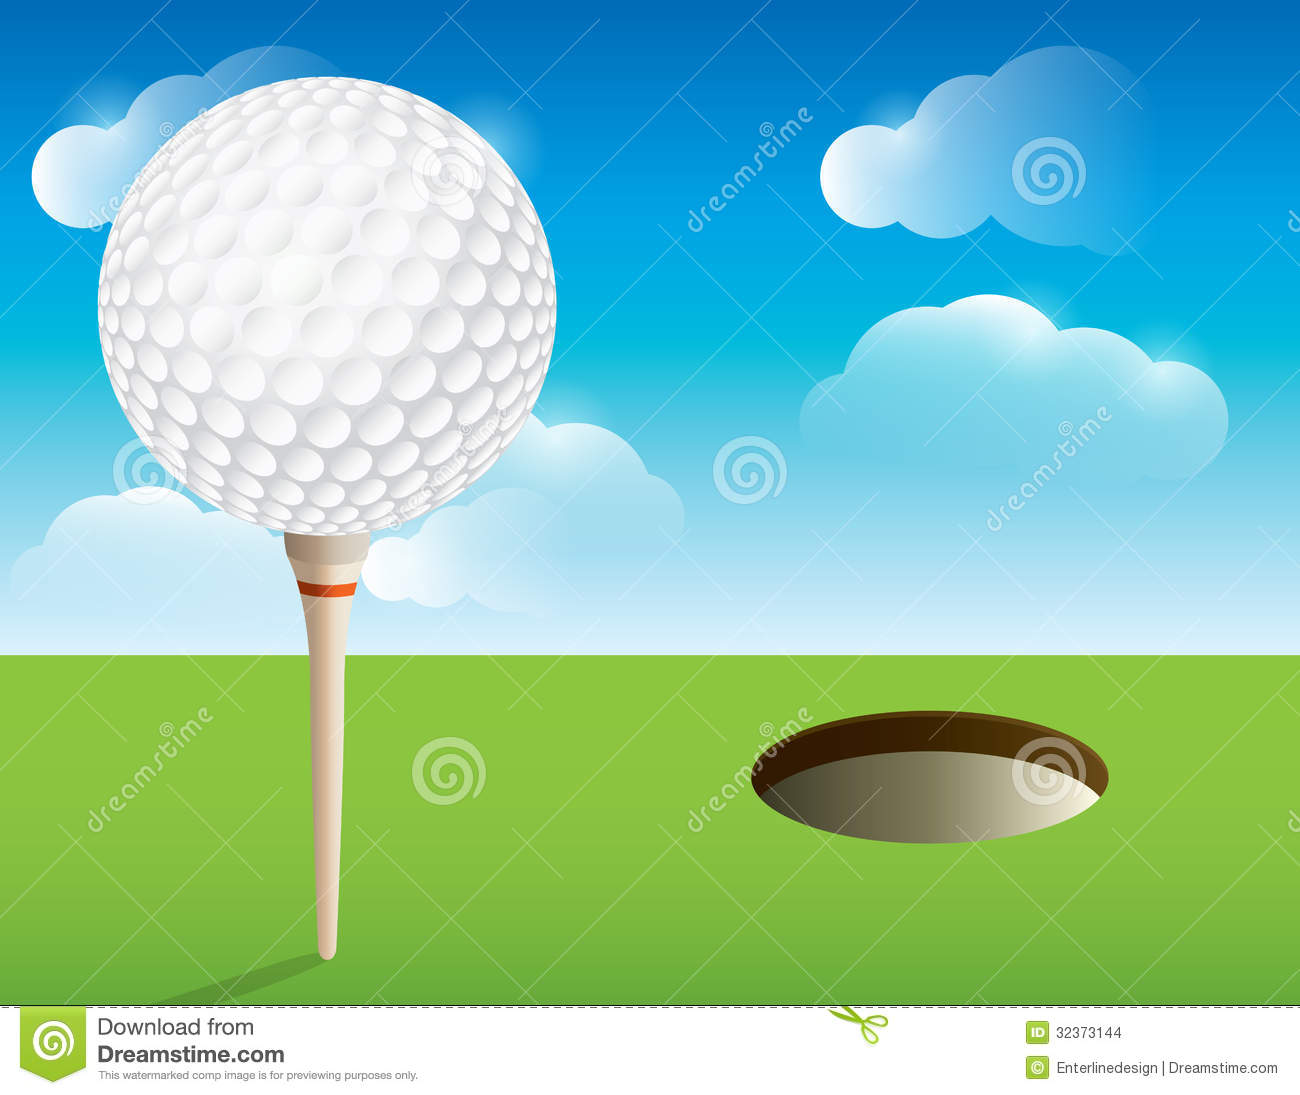 golf background stock illustration illustration of background